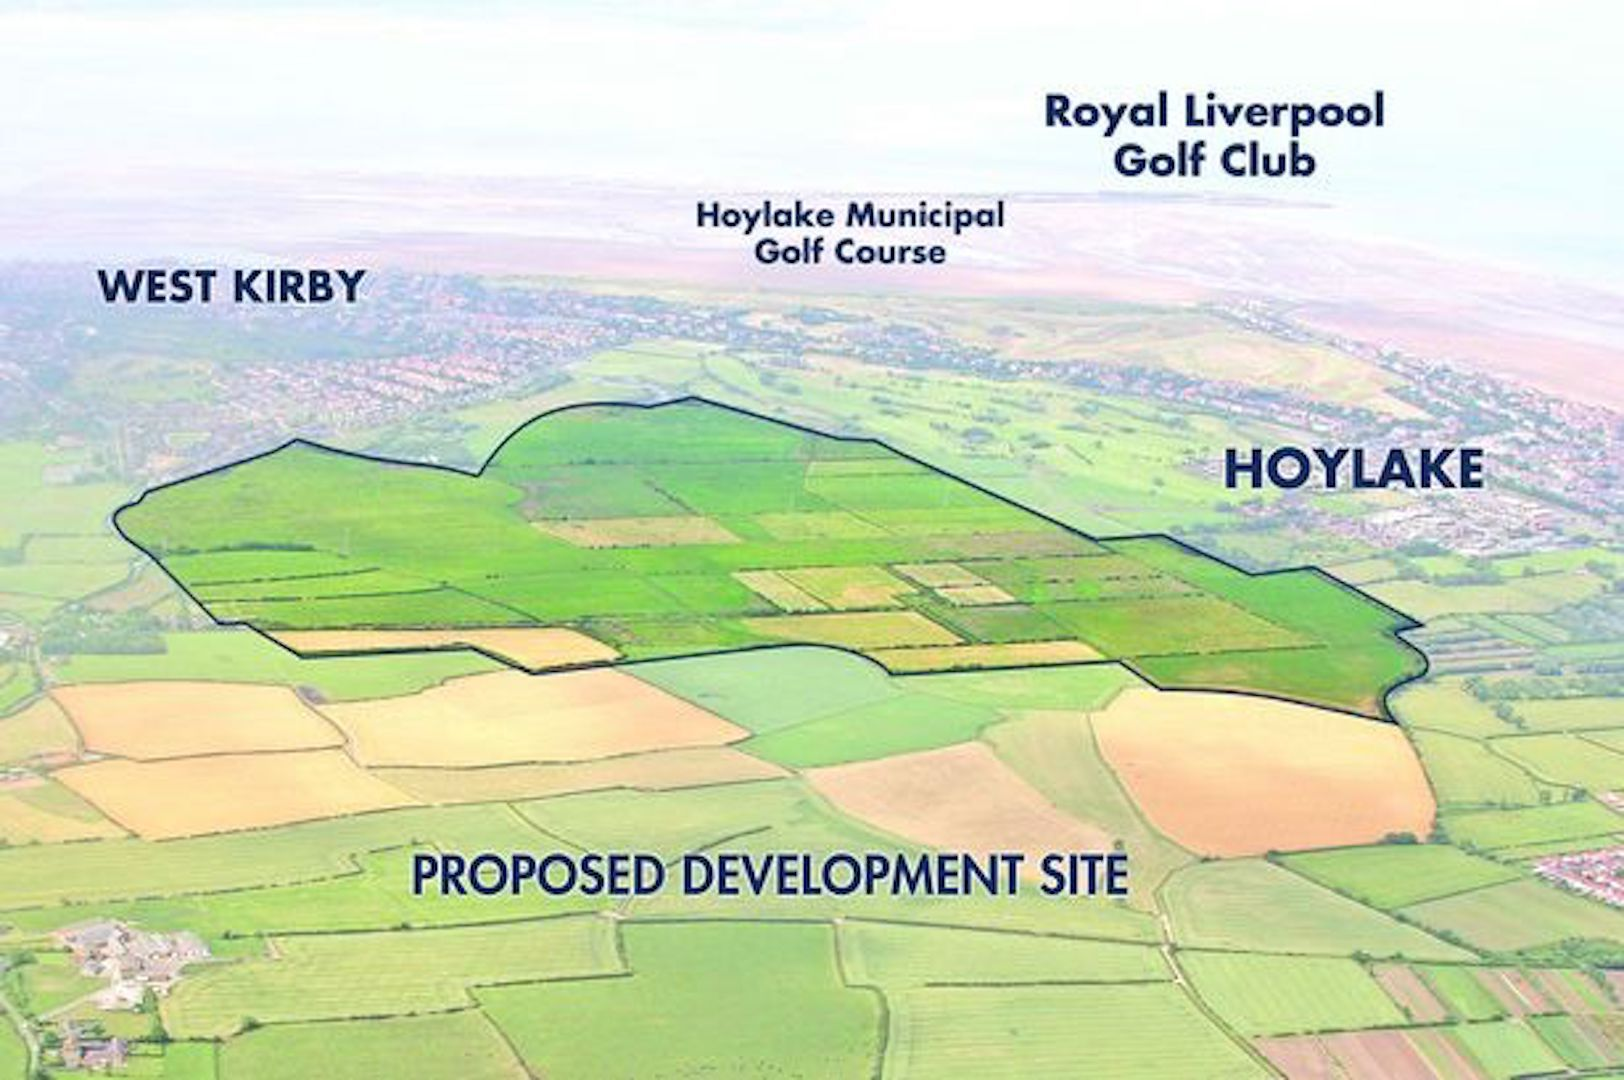 Wirral Council to spend £600,000 on it's Jack Nicklaus resort plan